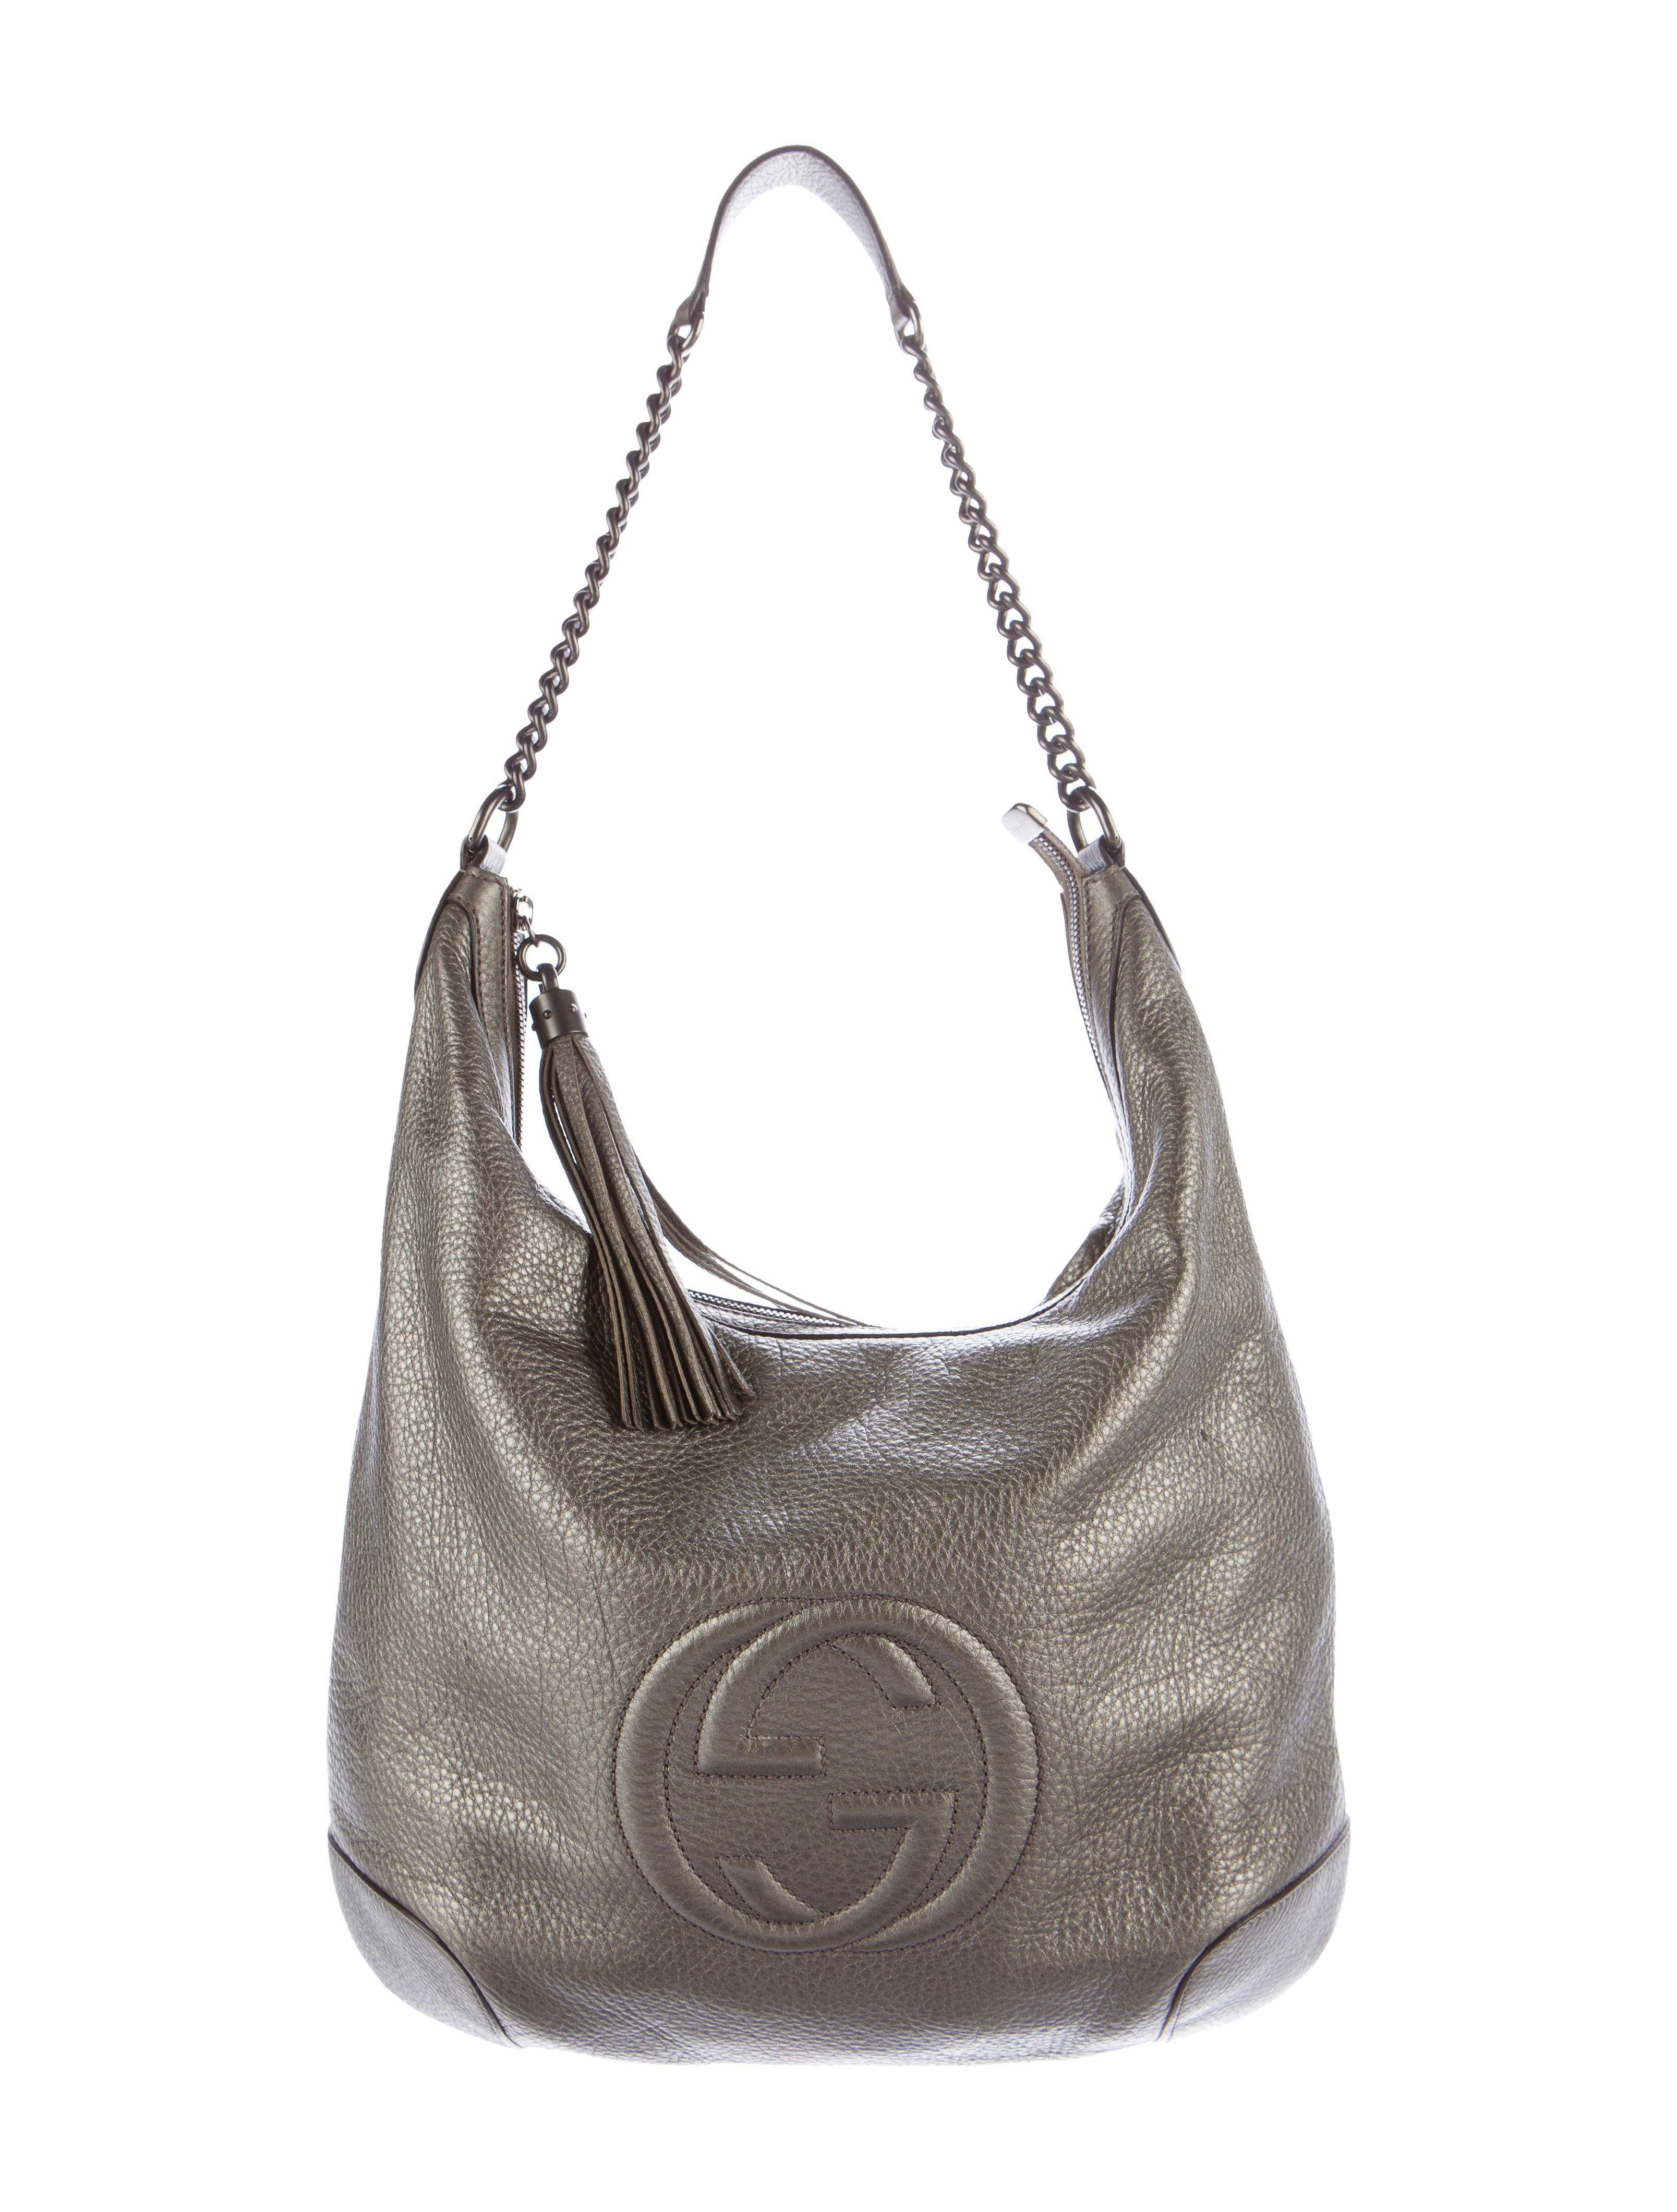 66799c715 Gucci Soho Chain Hobo Bags | Stanford Center for Opportunity Policy ...